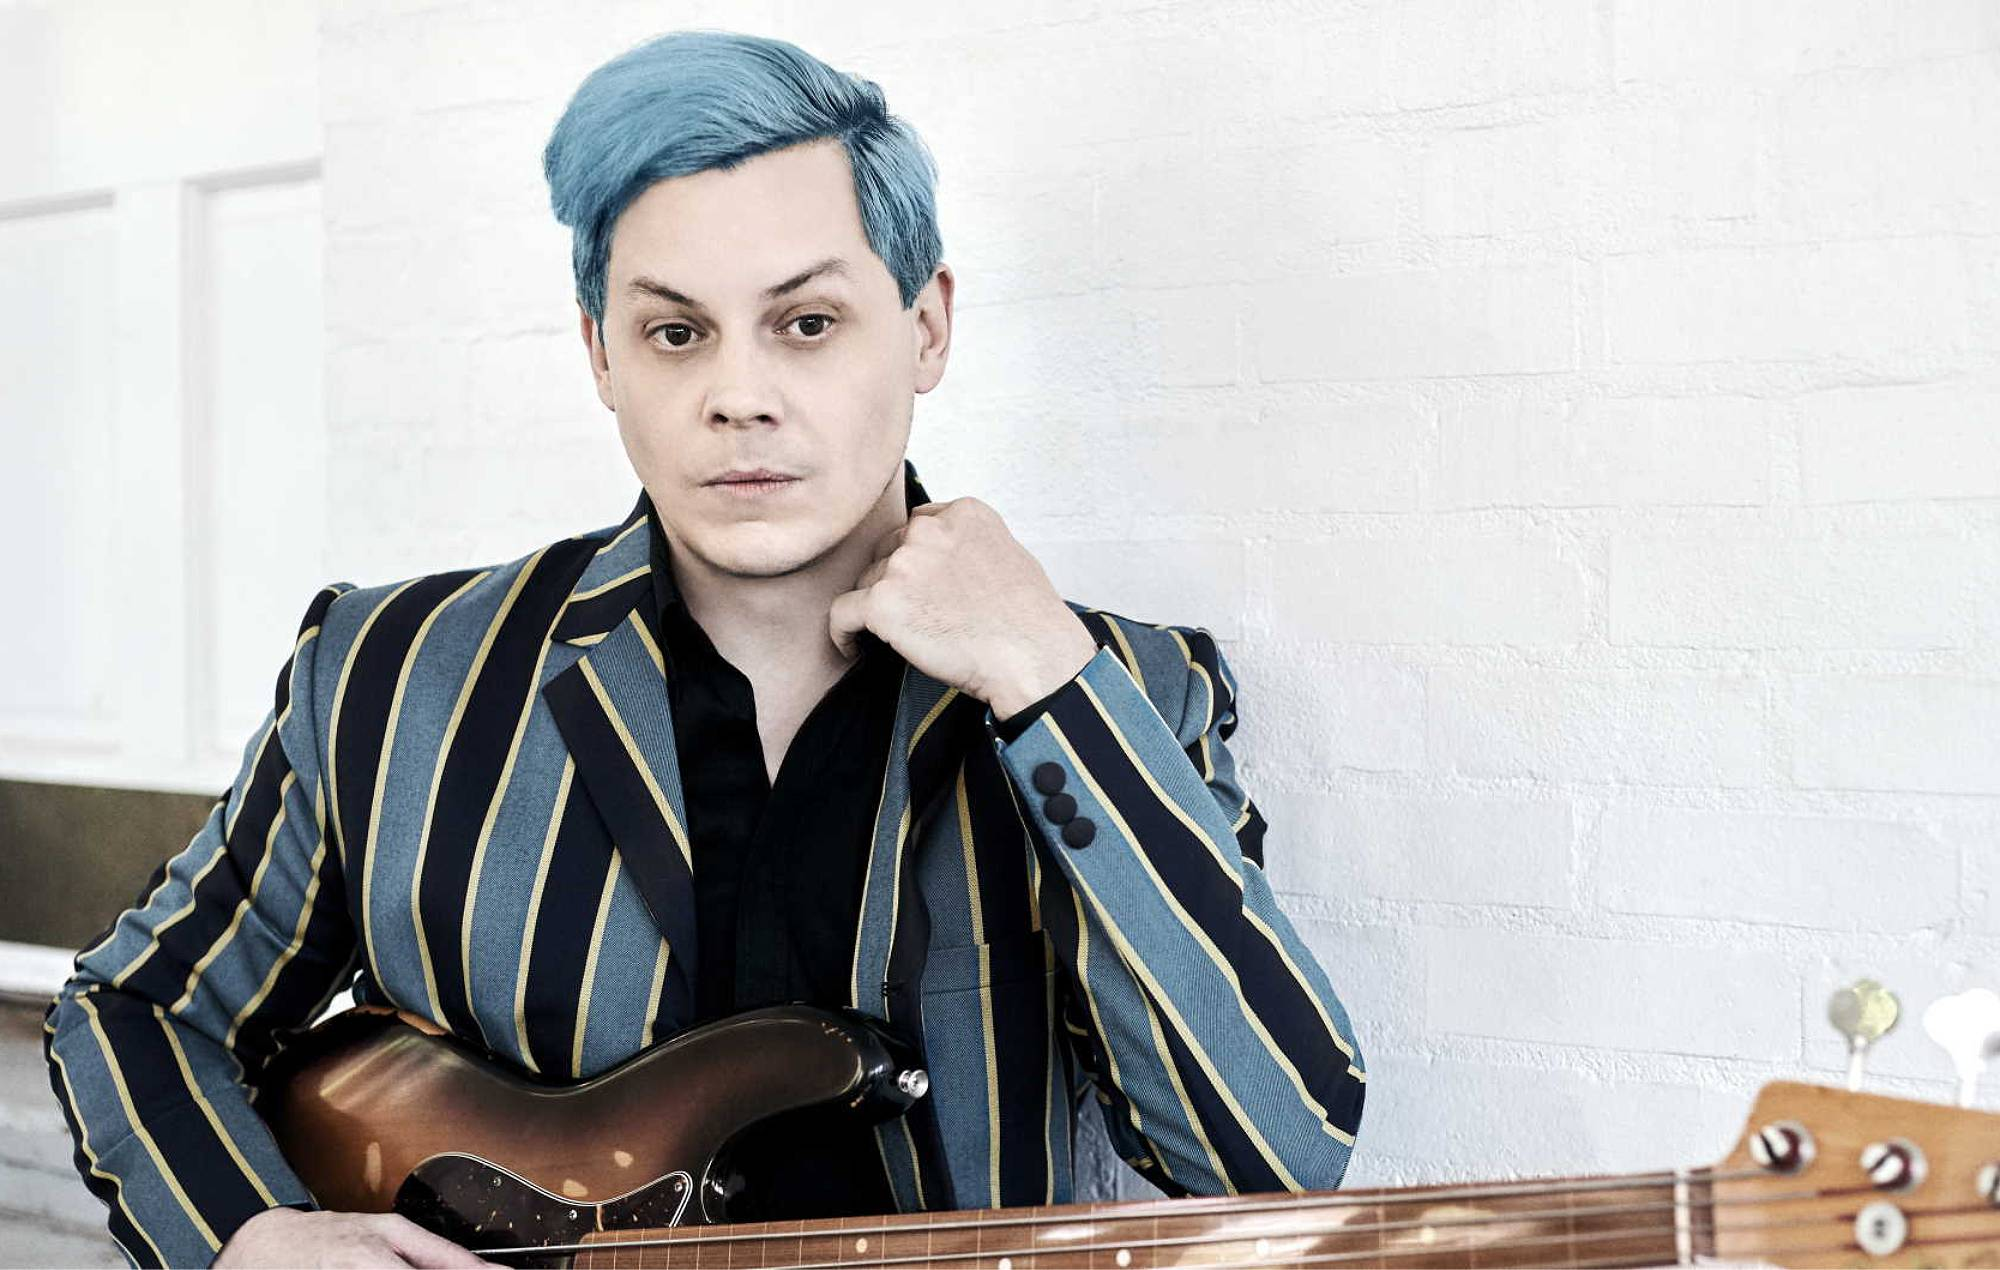 Jack White shares 'Taking Me Back', his first new solo single in three years